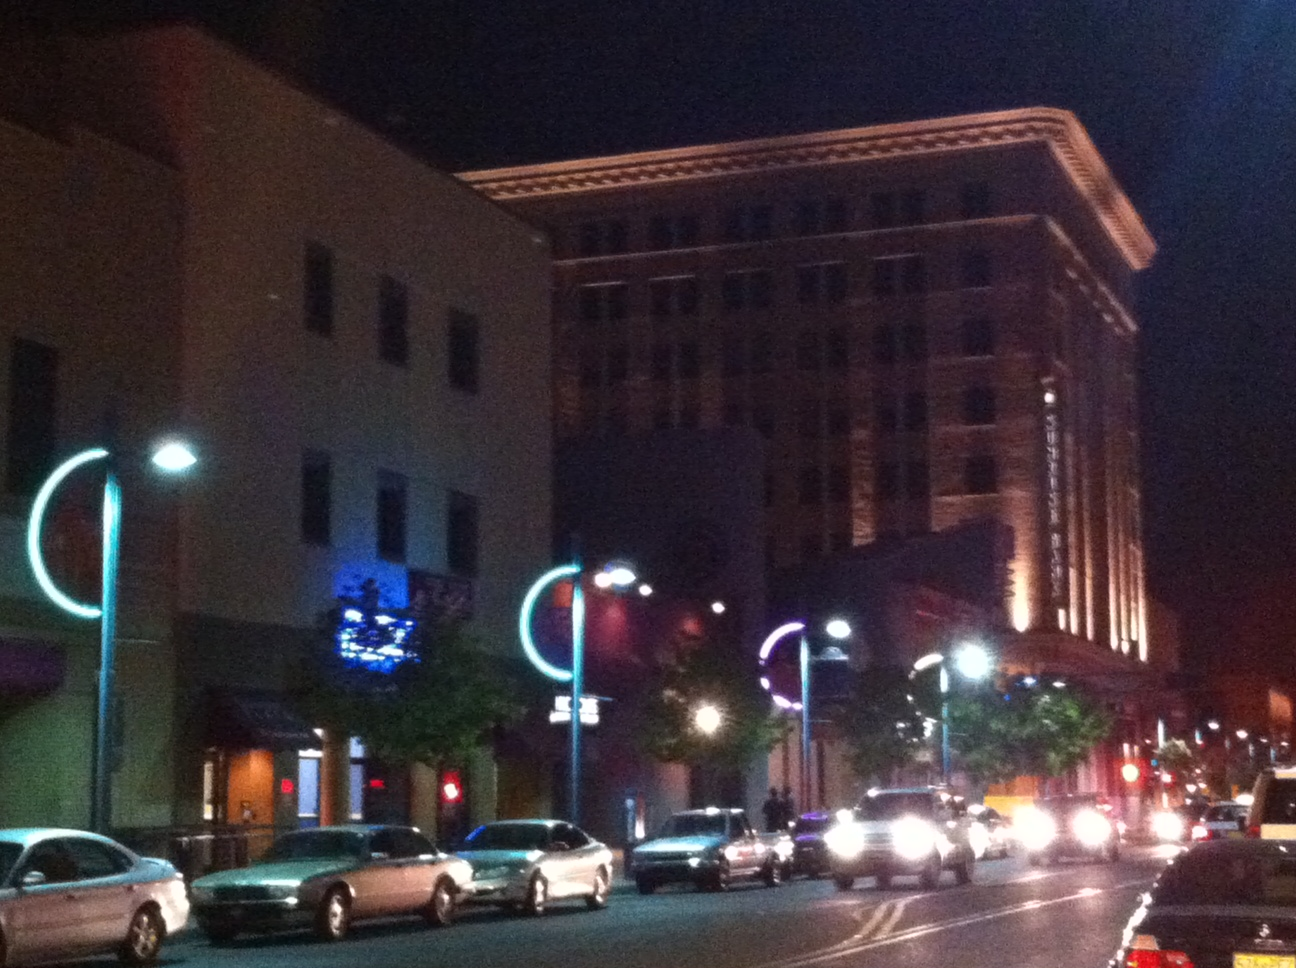 The lights feature LED neon which provides energy efficiency longer life than traditional neon lighting and color changing ability. & LED Neon Lighting | Downtown Albuquerque MainStreet azcodes.com